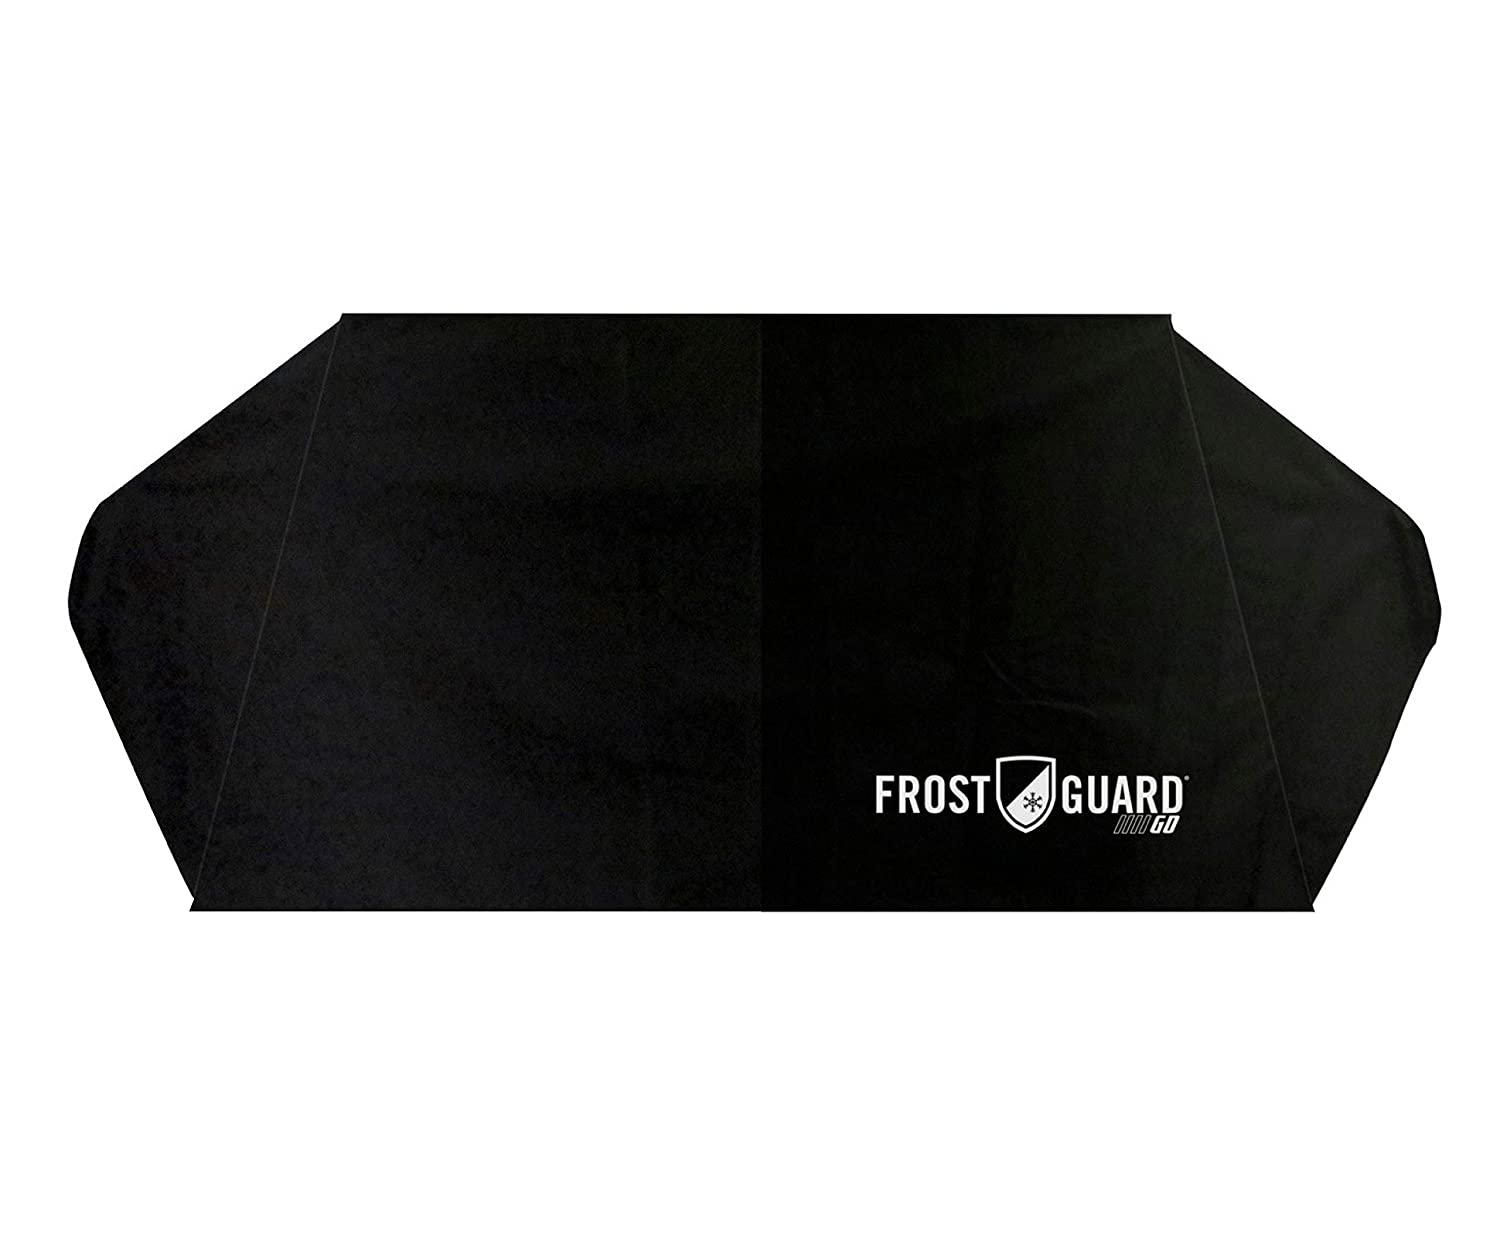 52832 Ice and Frost FrostGuard Go Fits Most Cars and Mid-Size SUVs Protects Essential Viewing Area from Snow Portable Winter Windshield Cover with Security Panels and Travel Storage Pouch